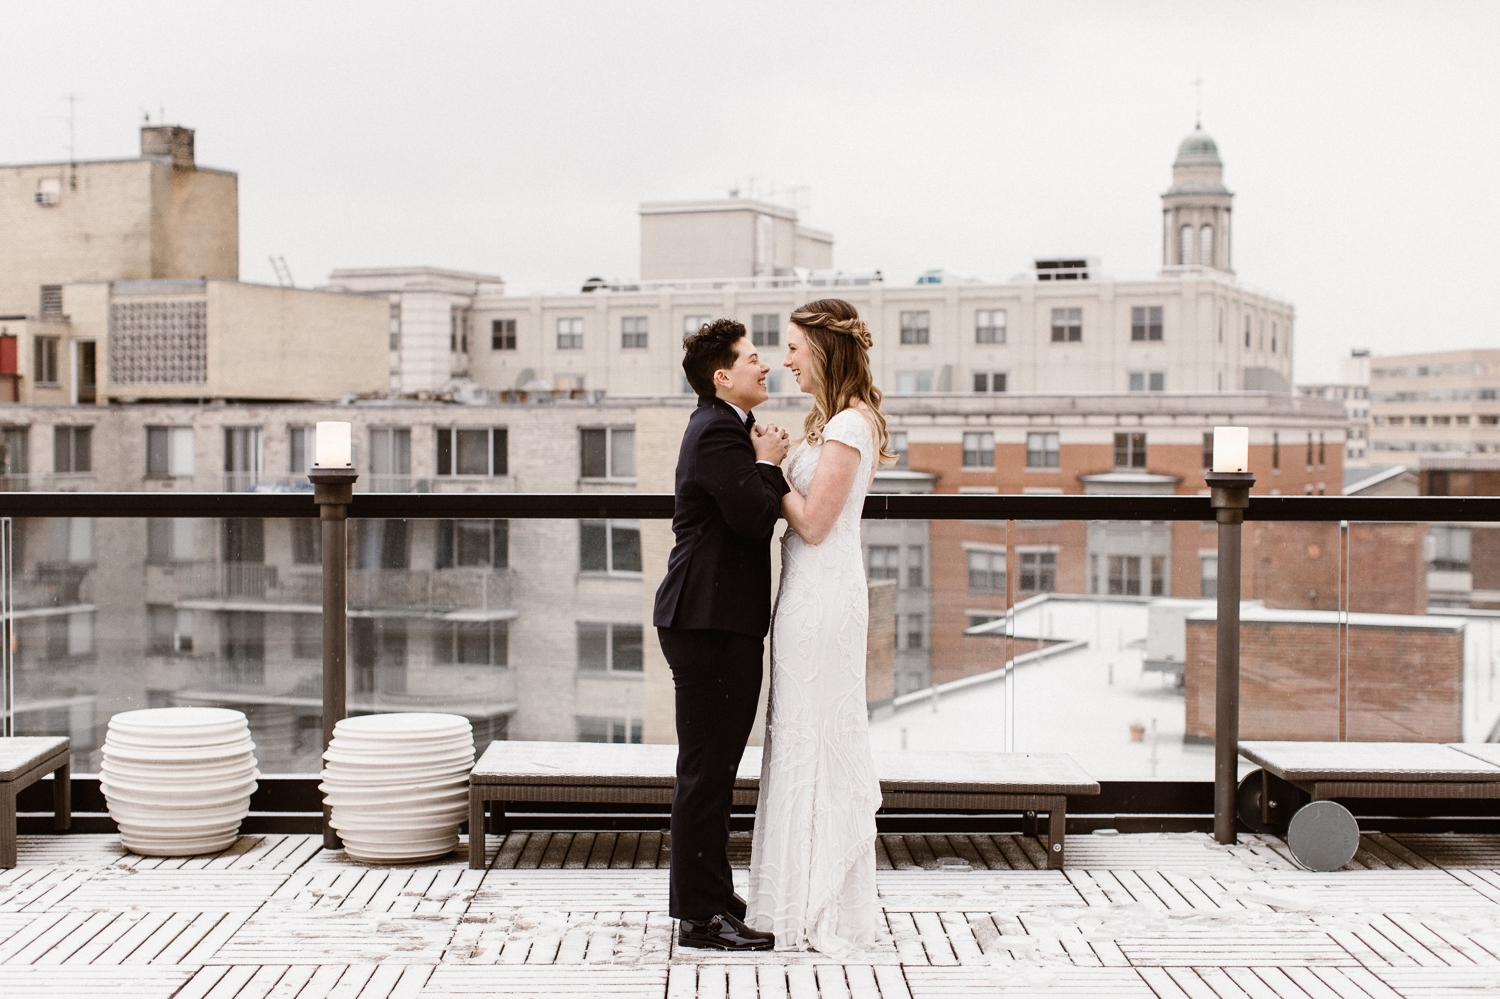 mason-and-rook-first-look-rooftop-josephine-butler-parks-wedding-photographer 60.jpg